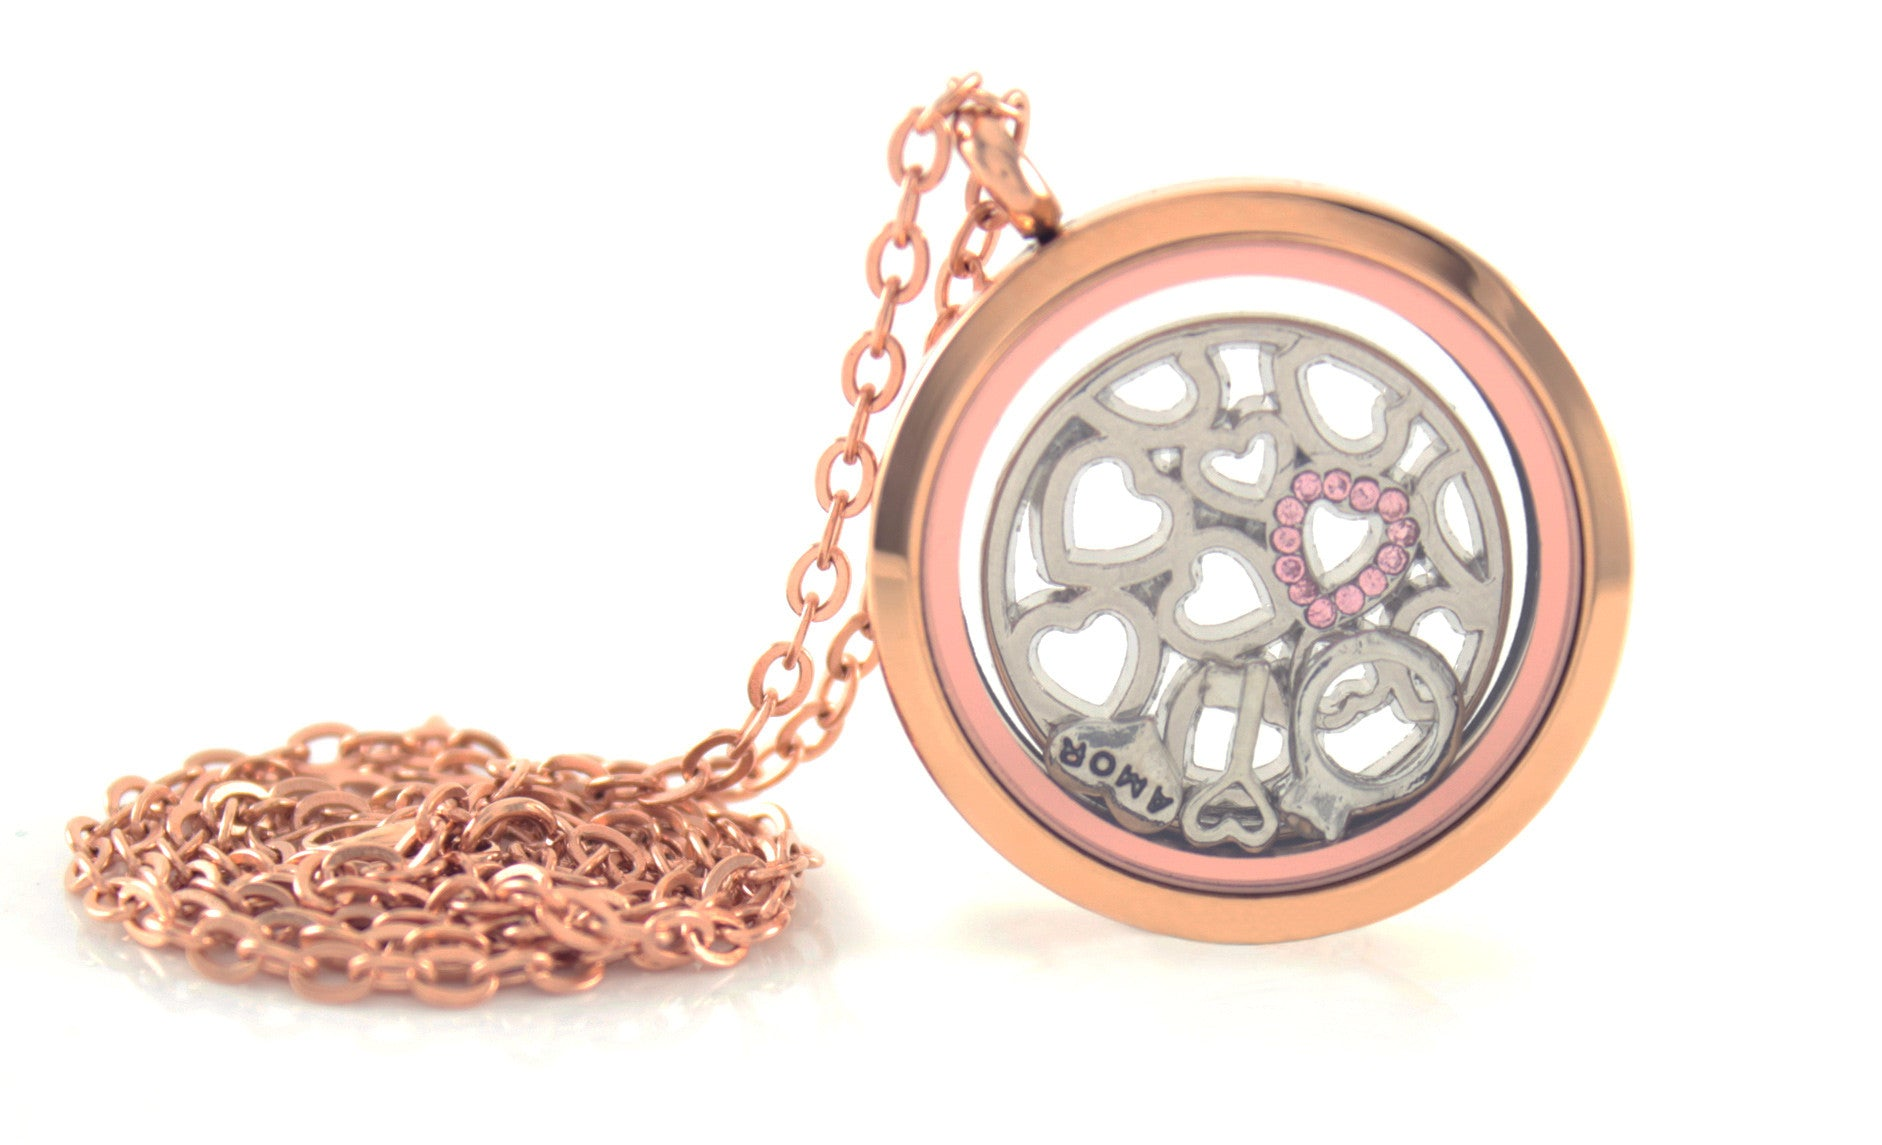 Stainless Steel Floating Locket Necklace with Choice of 6 Charms and 1 Plate (Rose Gold No Stone)